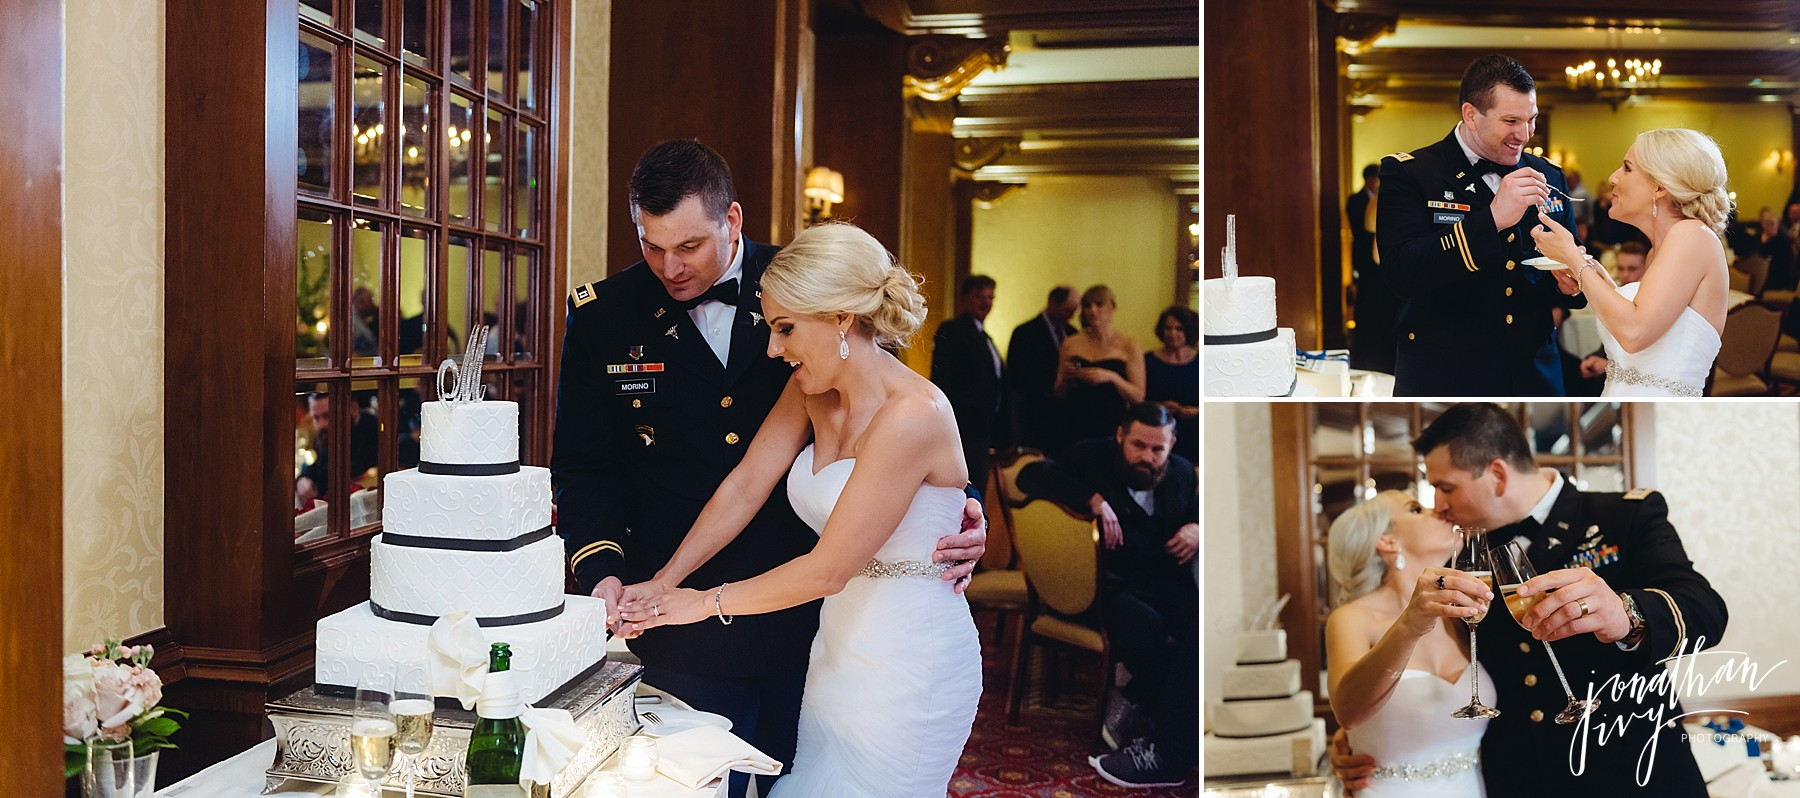 Chateau-Polonez-Wedding-Houston_0033.jpg